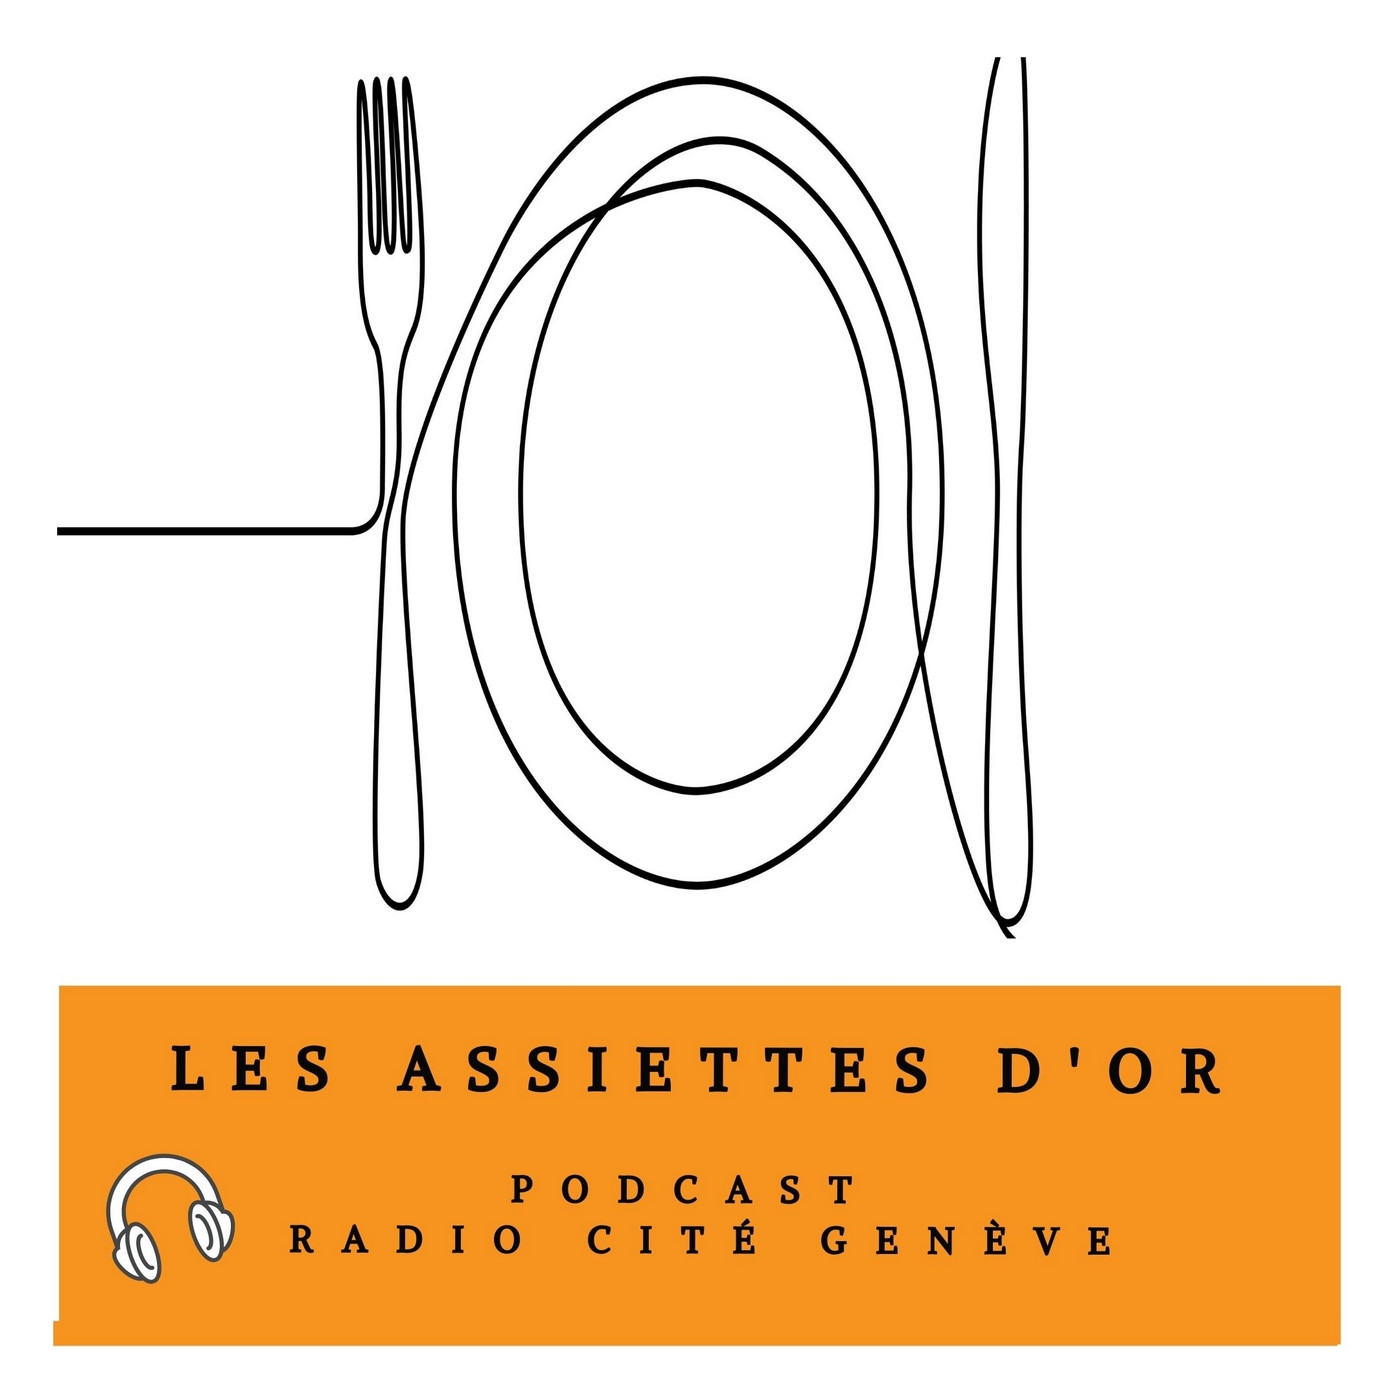 Les assiettes d'or - 28/10/20 - Auberge de Collex-Bossy